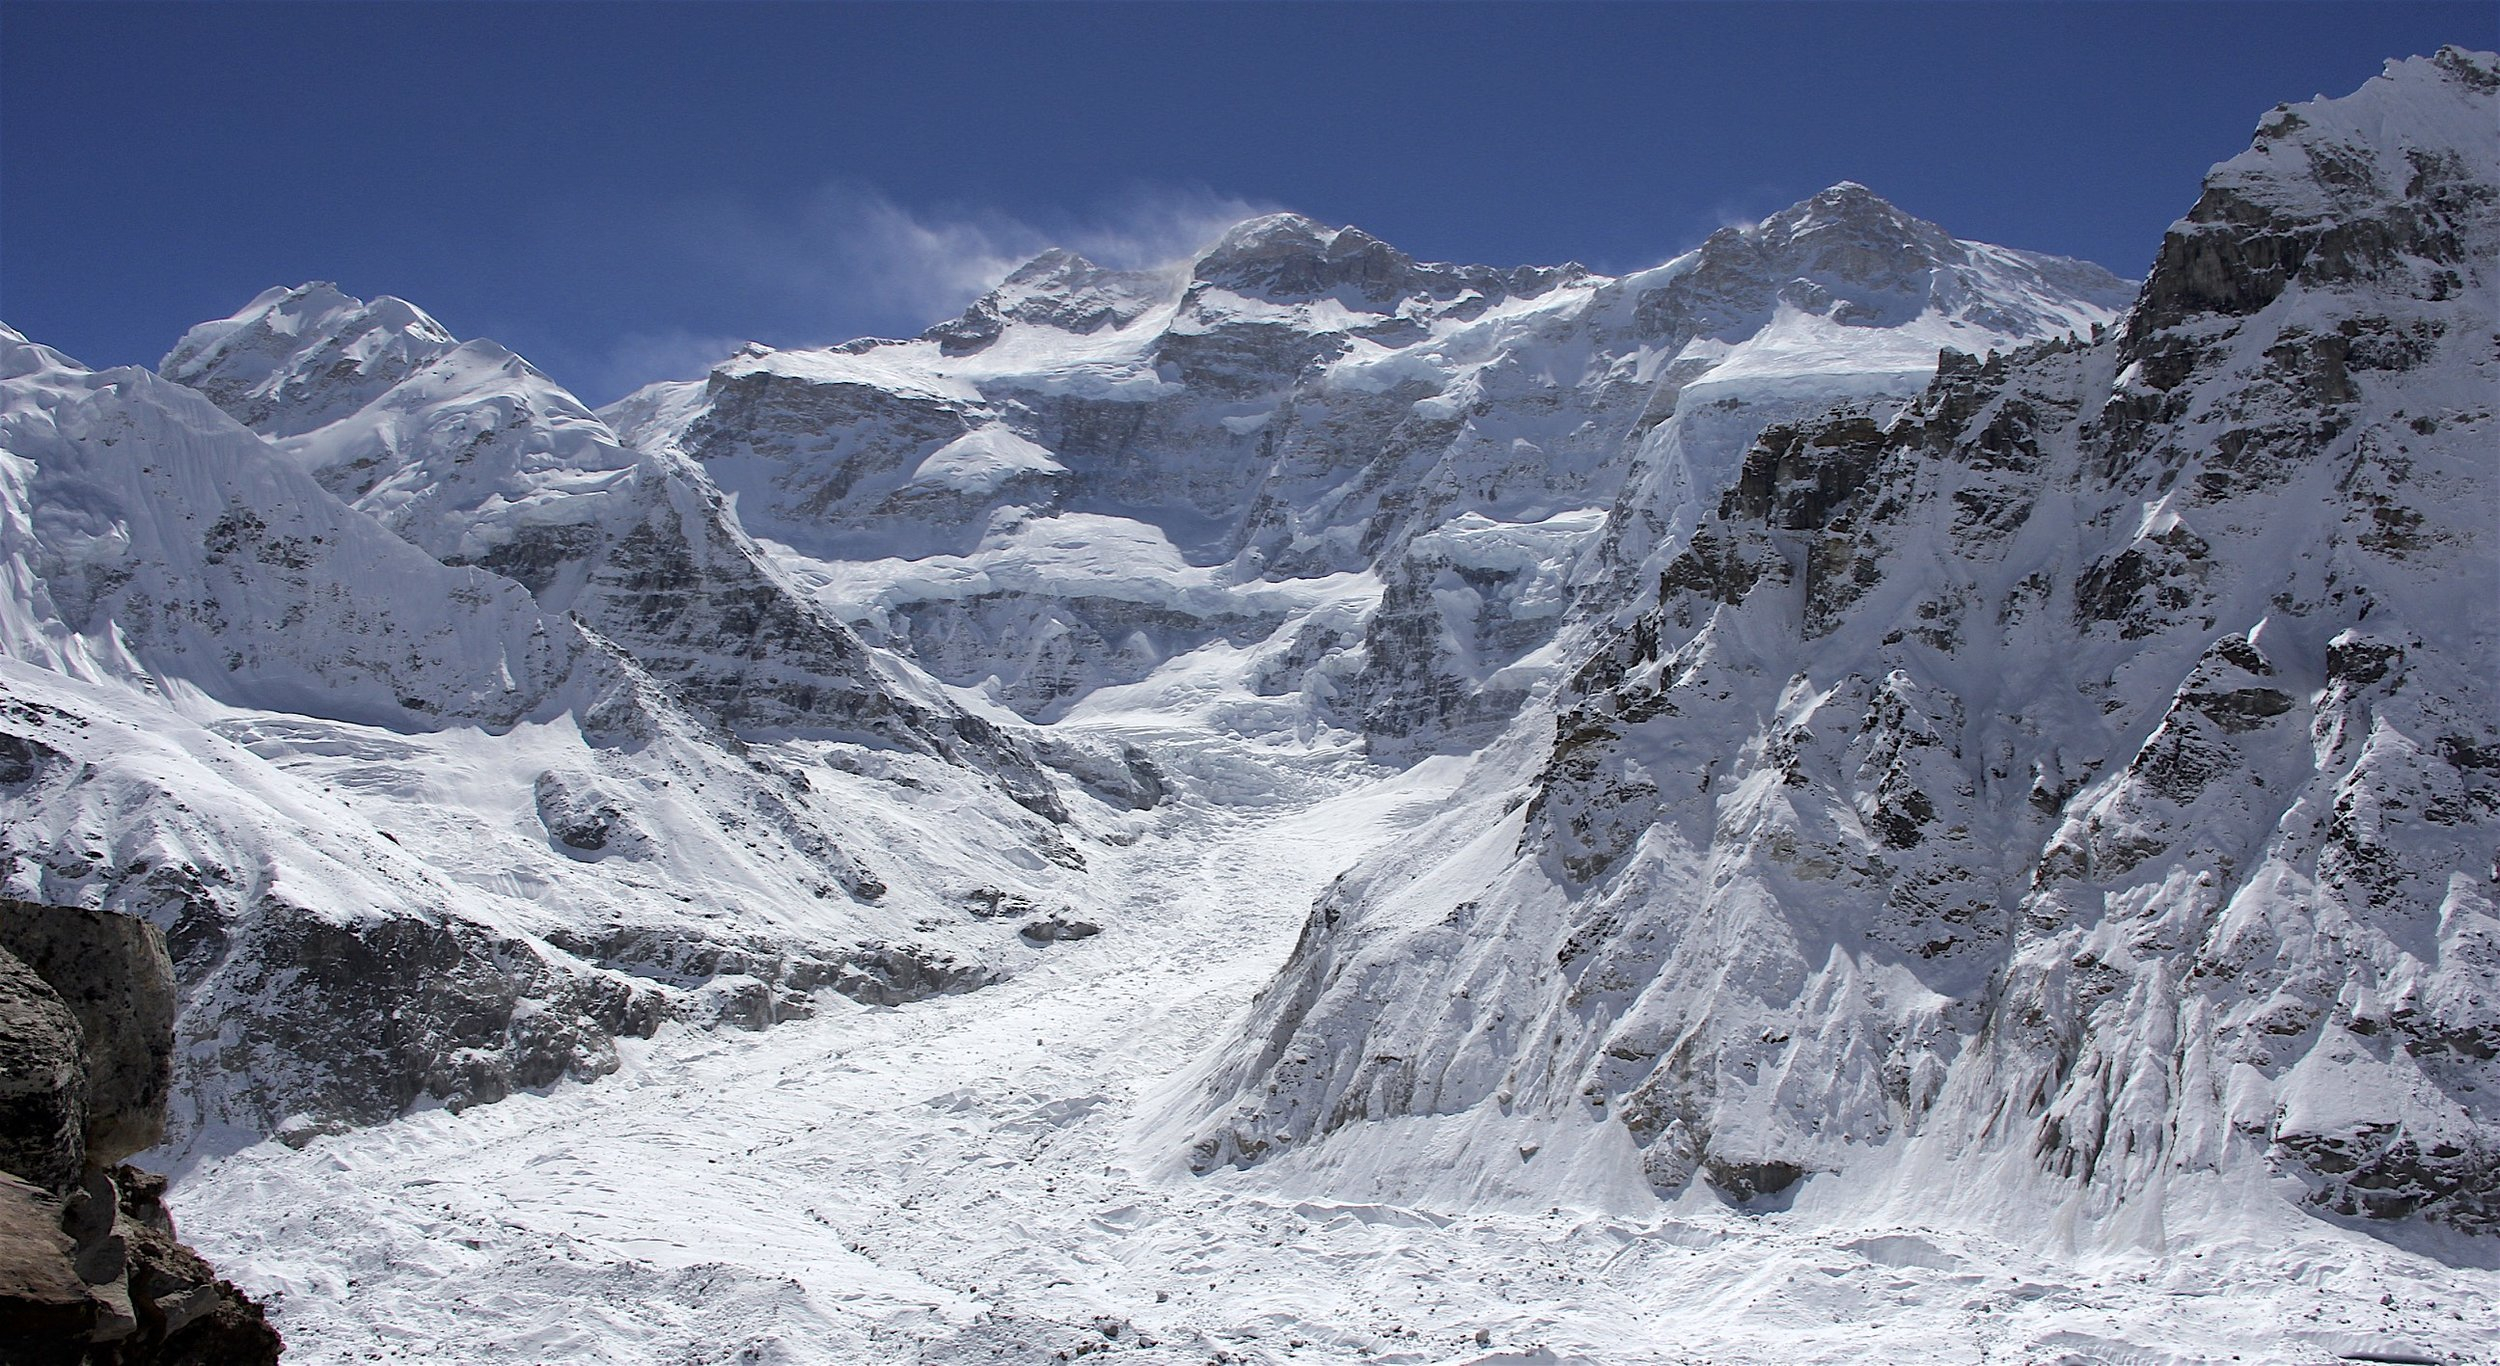 The Twins, Knchendzona North Face and the Wedge Peak above the Kanchendzonga Glacier